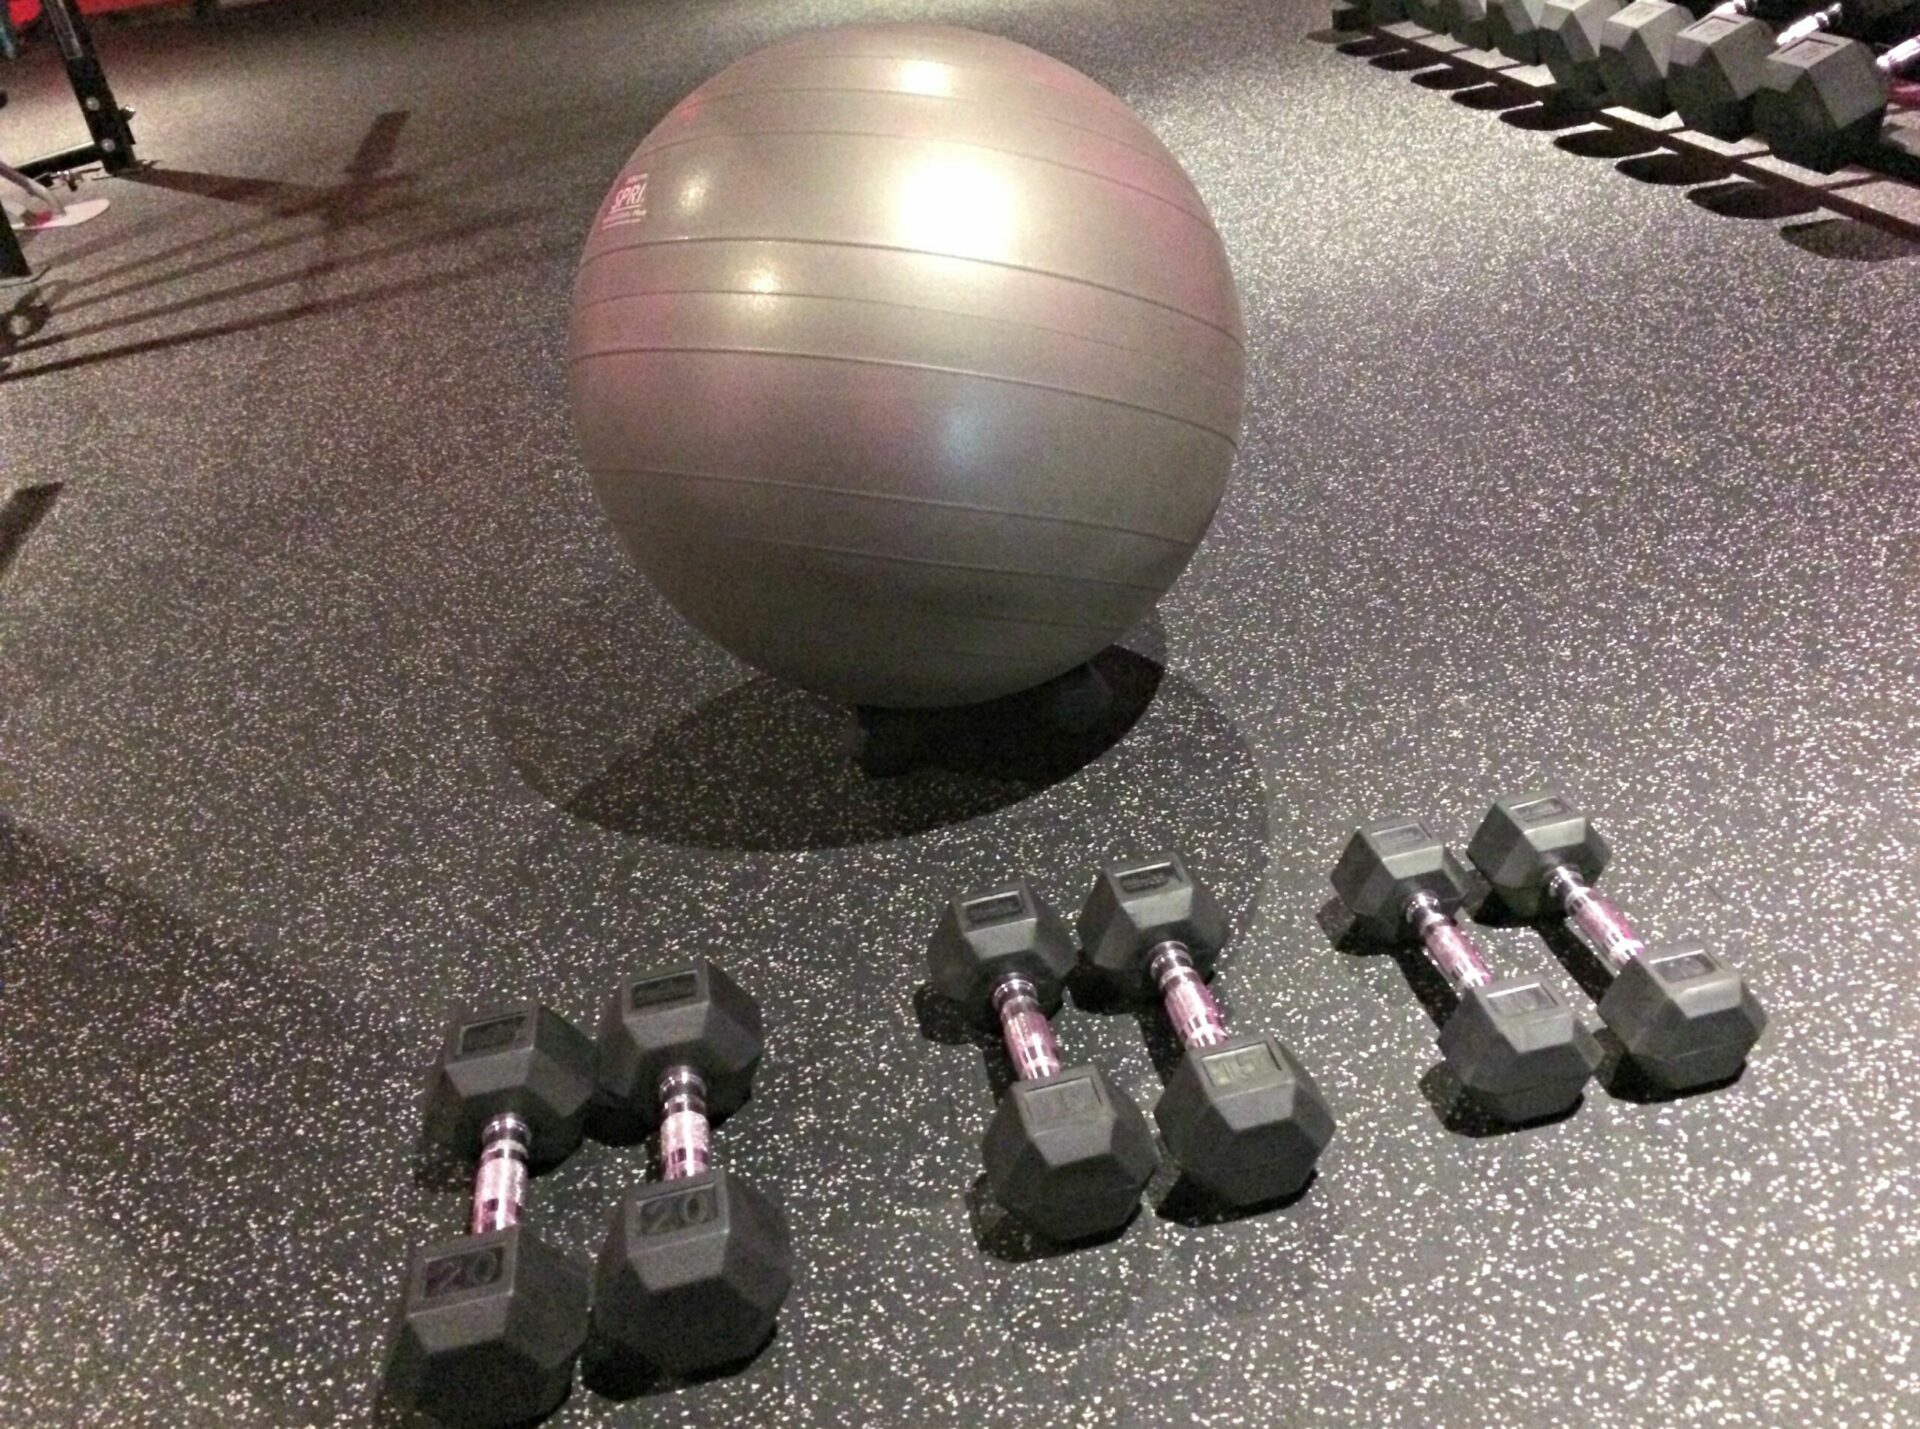 image of dumbbells and a stability ball